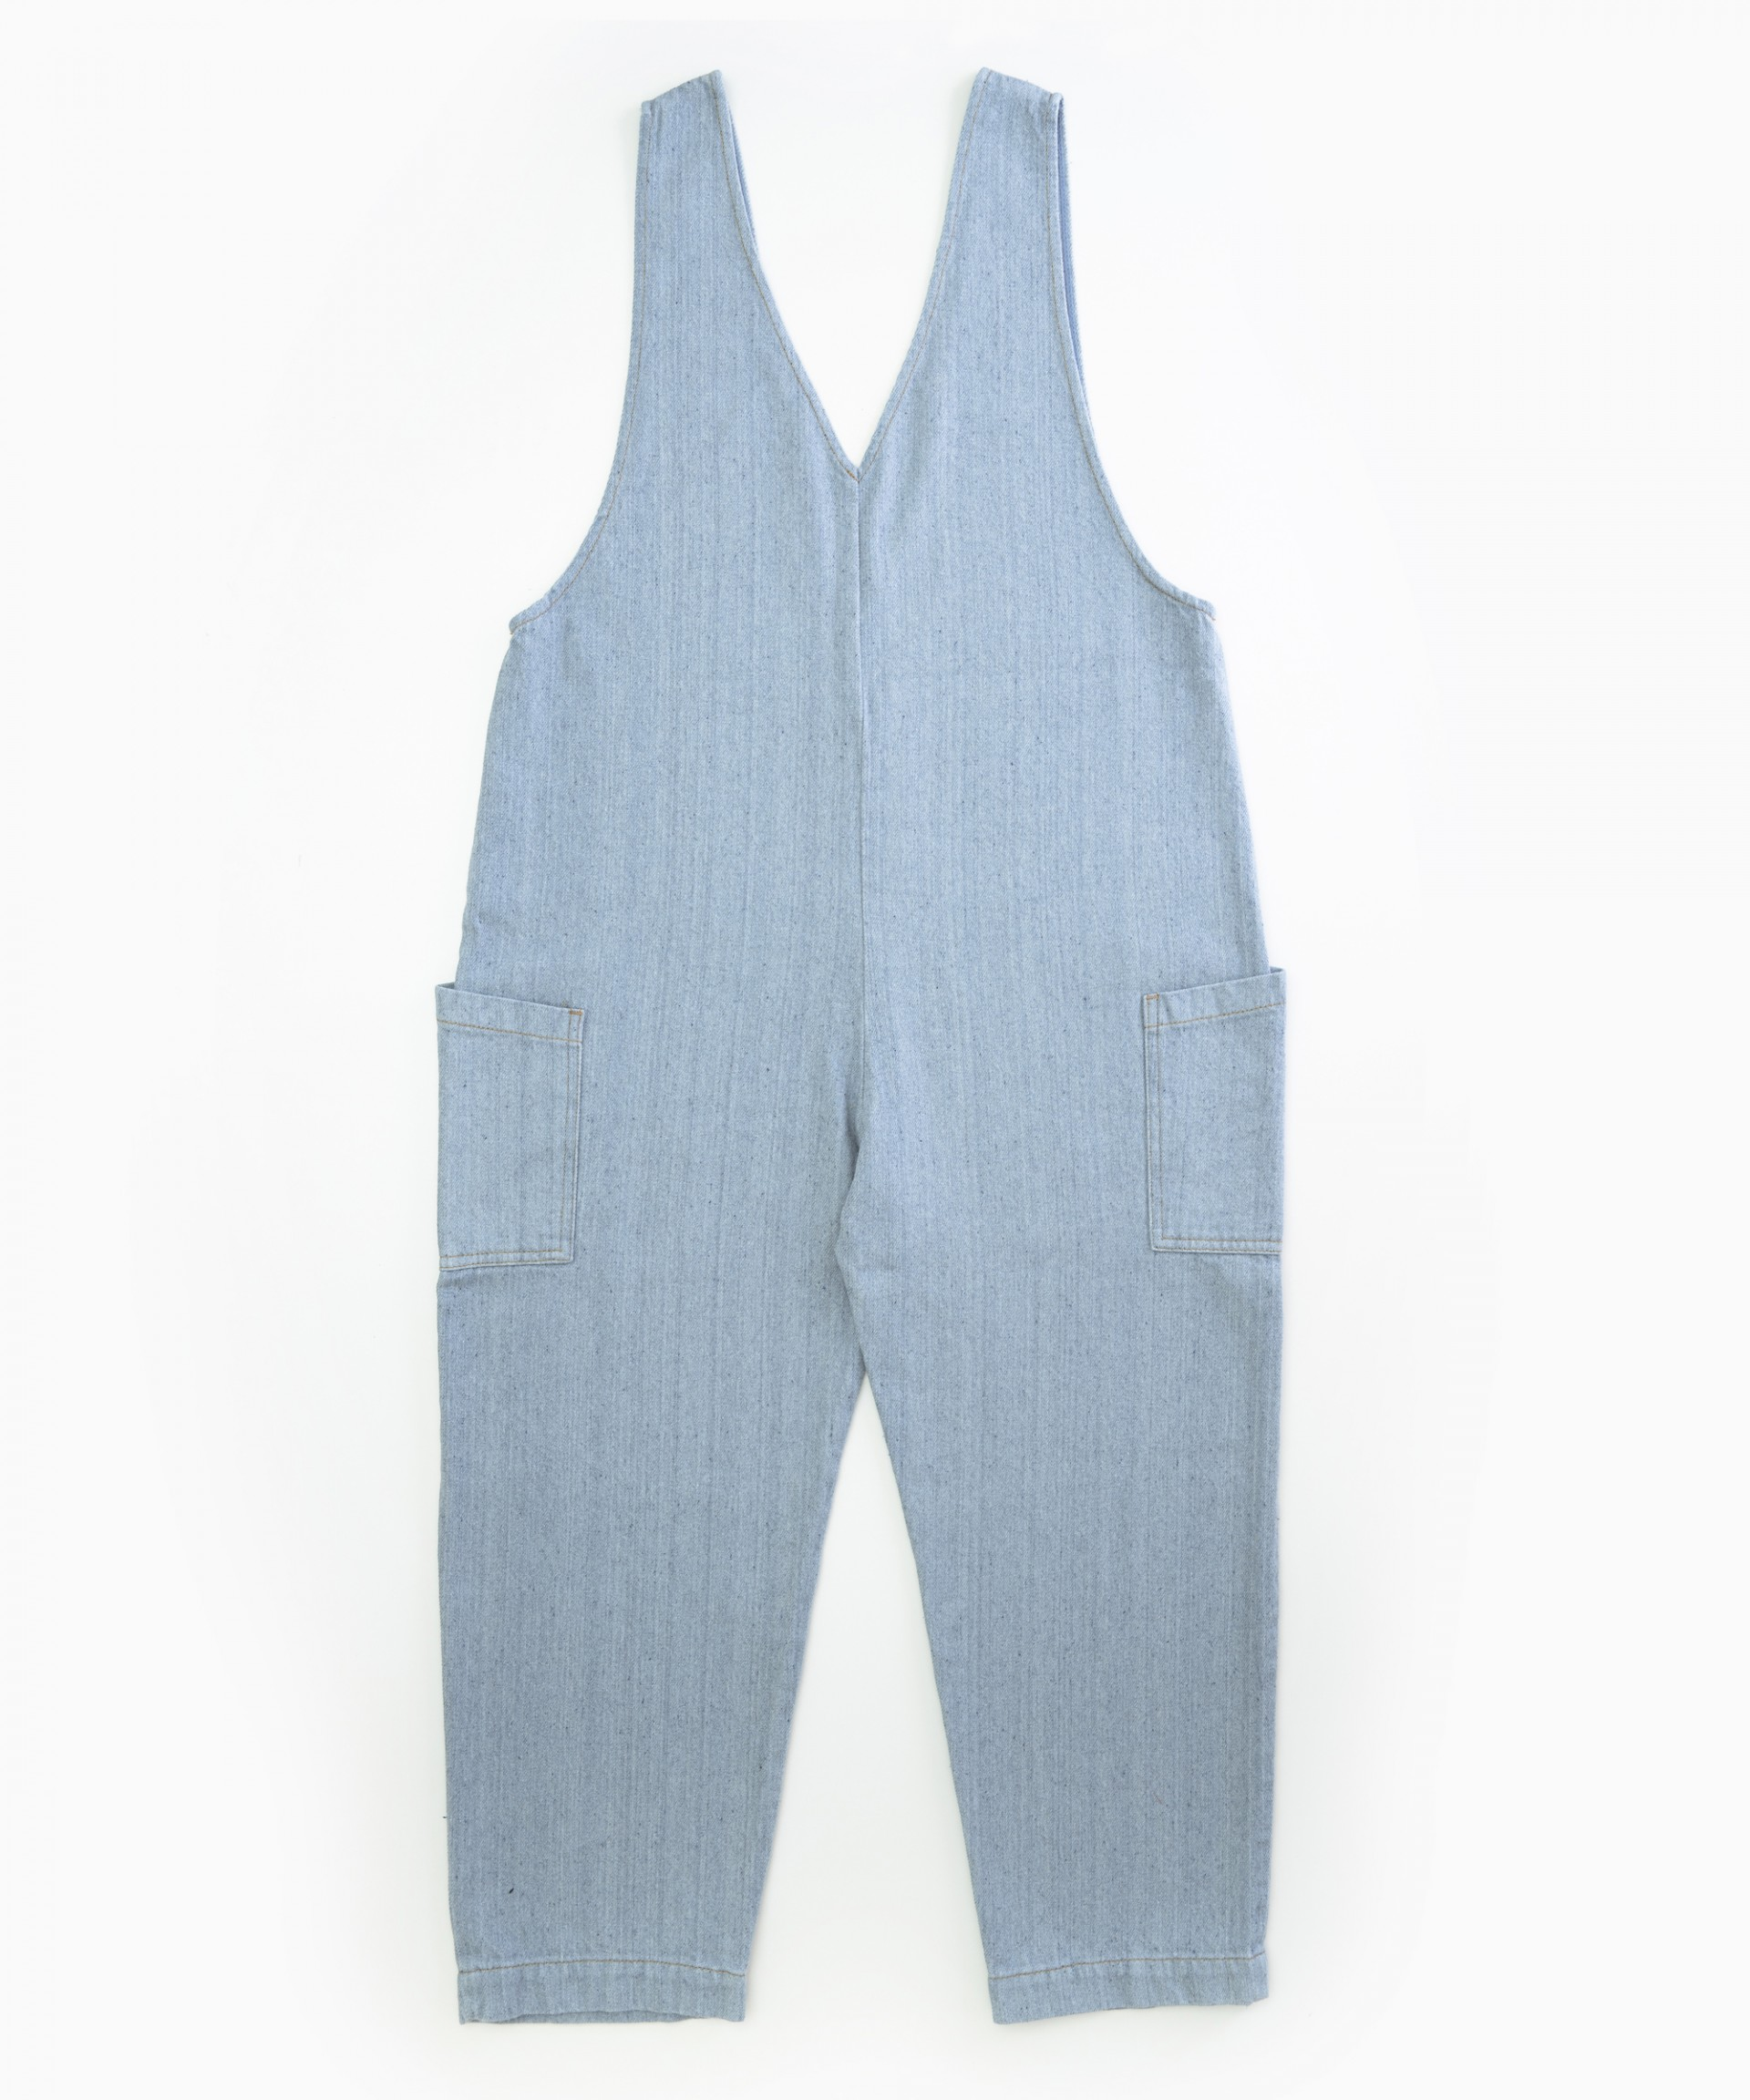 Denim dungarees with pockets | Woodwork